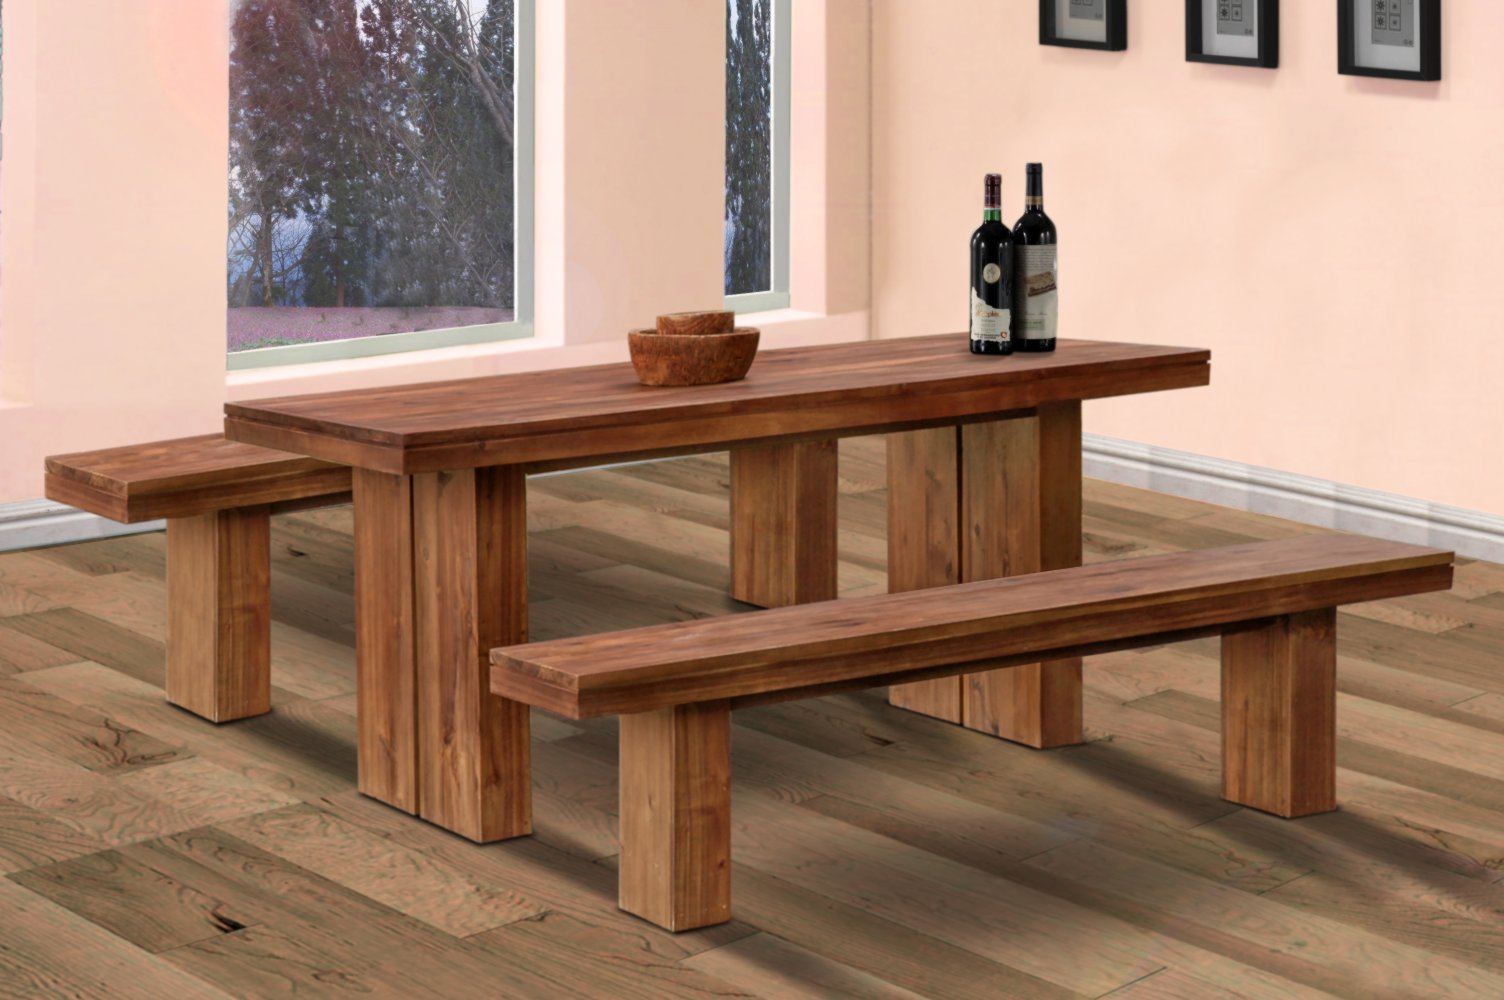 Picture of: Wooden Garden Bench and Table